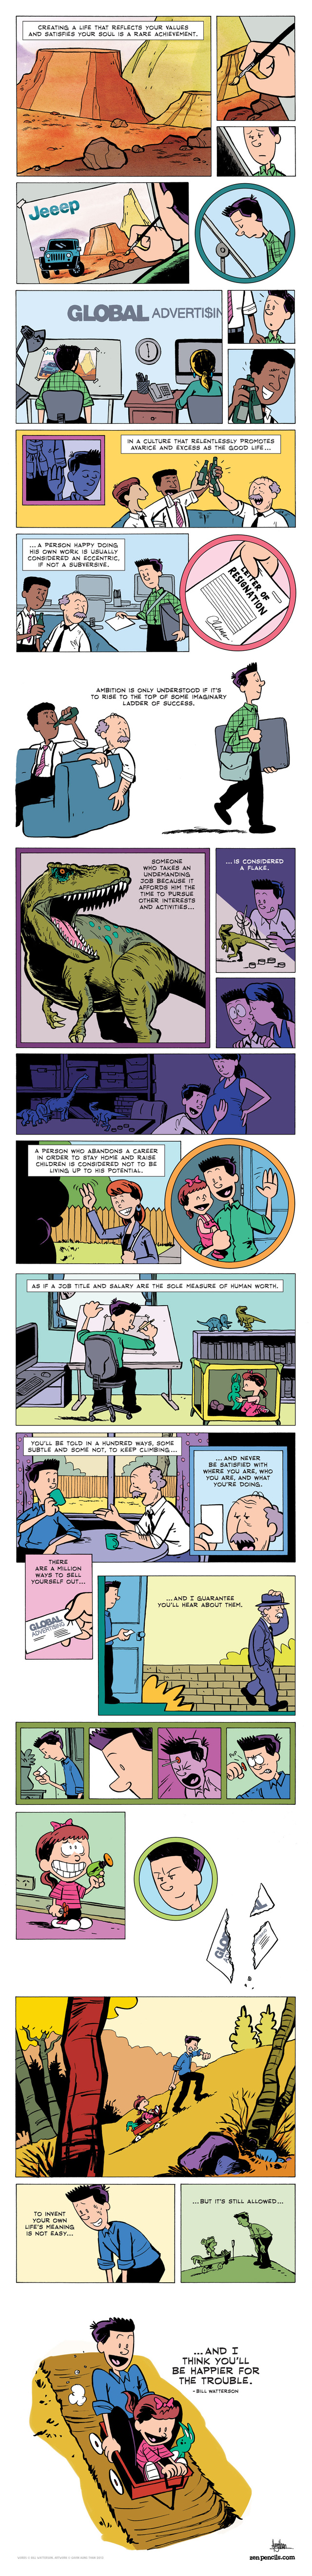 Comic Tribute to Bill Watterson (Calvin & Hobbes) infographic